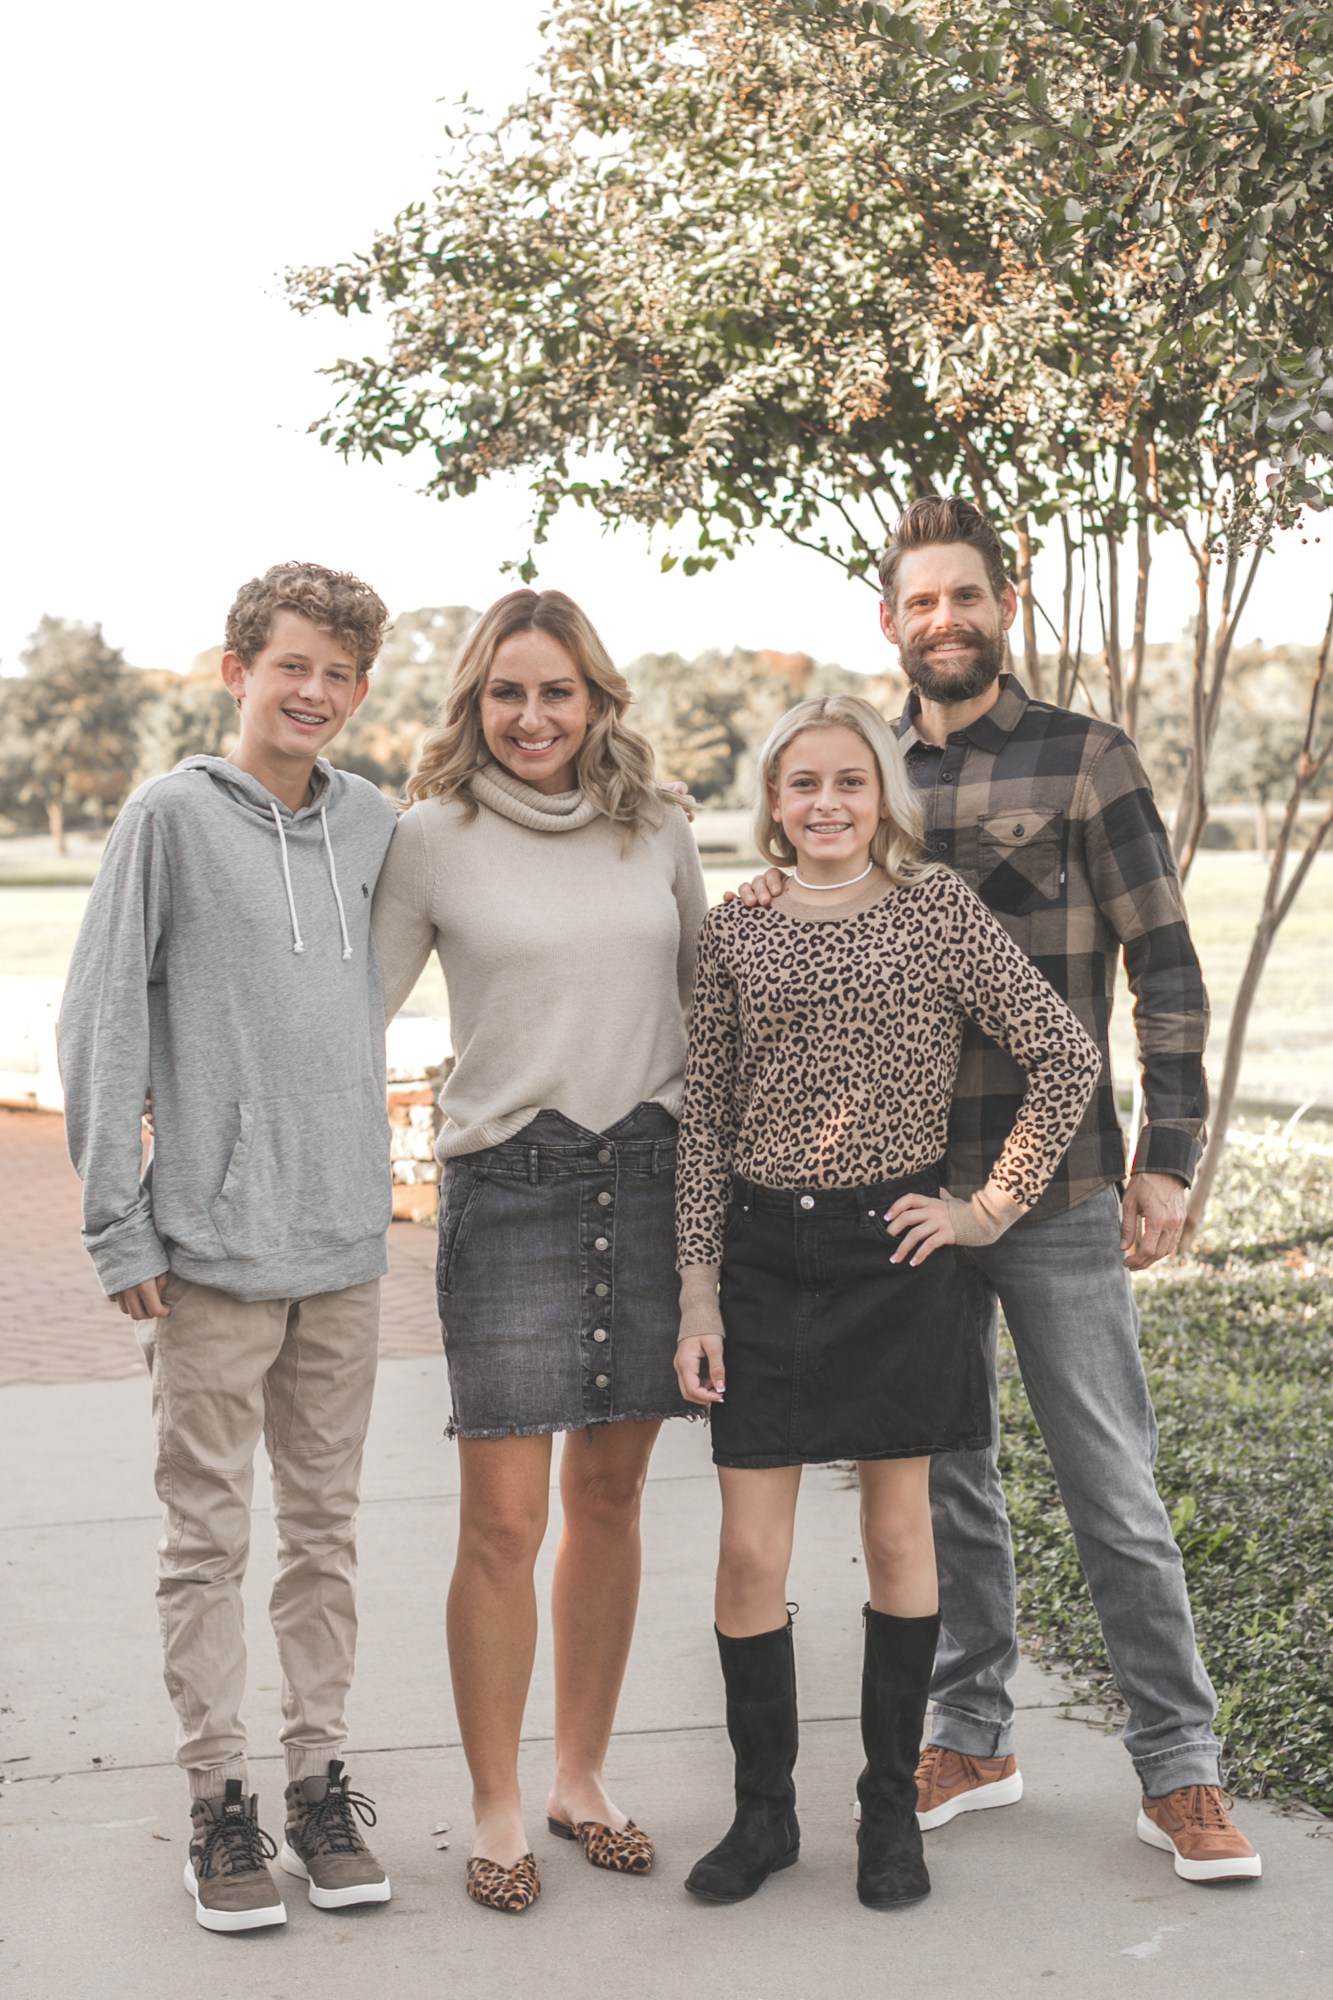 2018 Family Photos.jpg